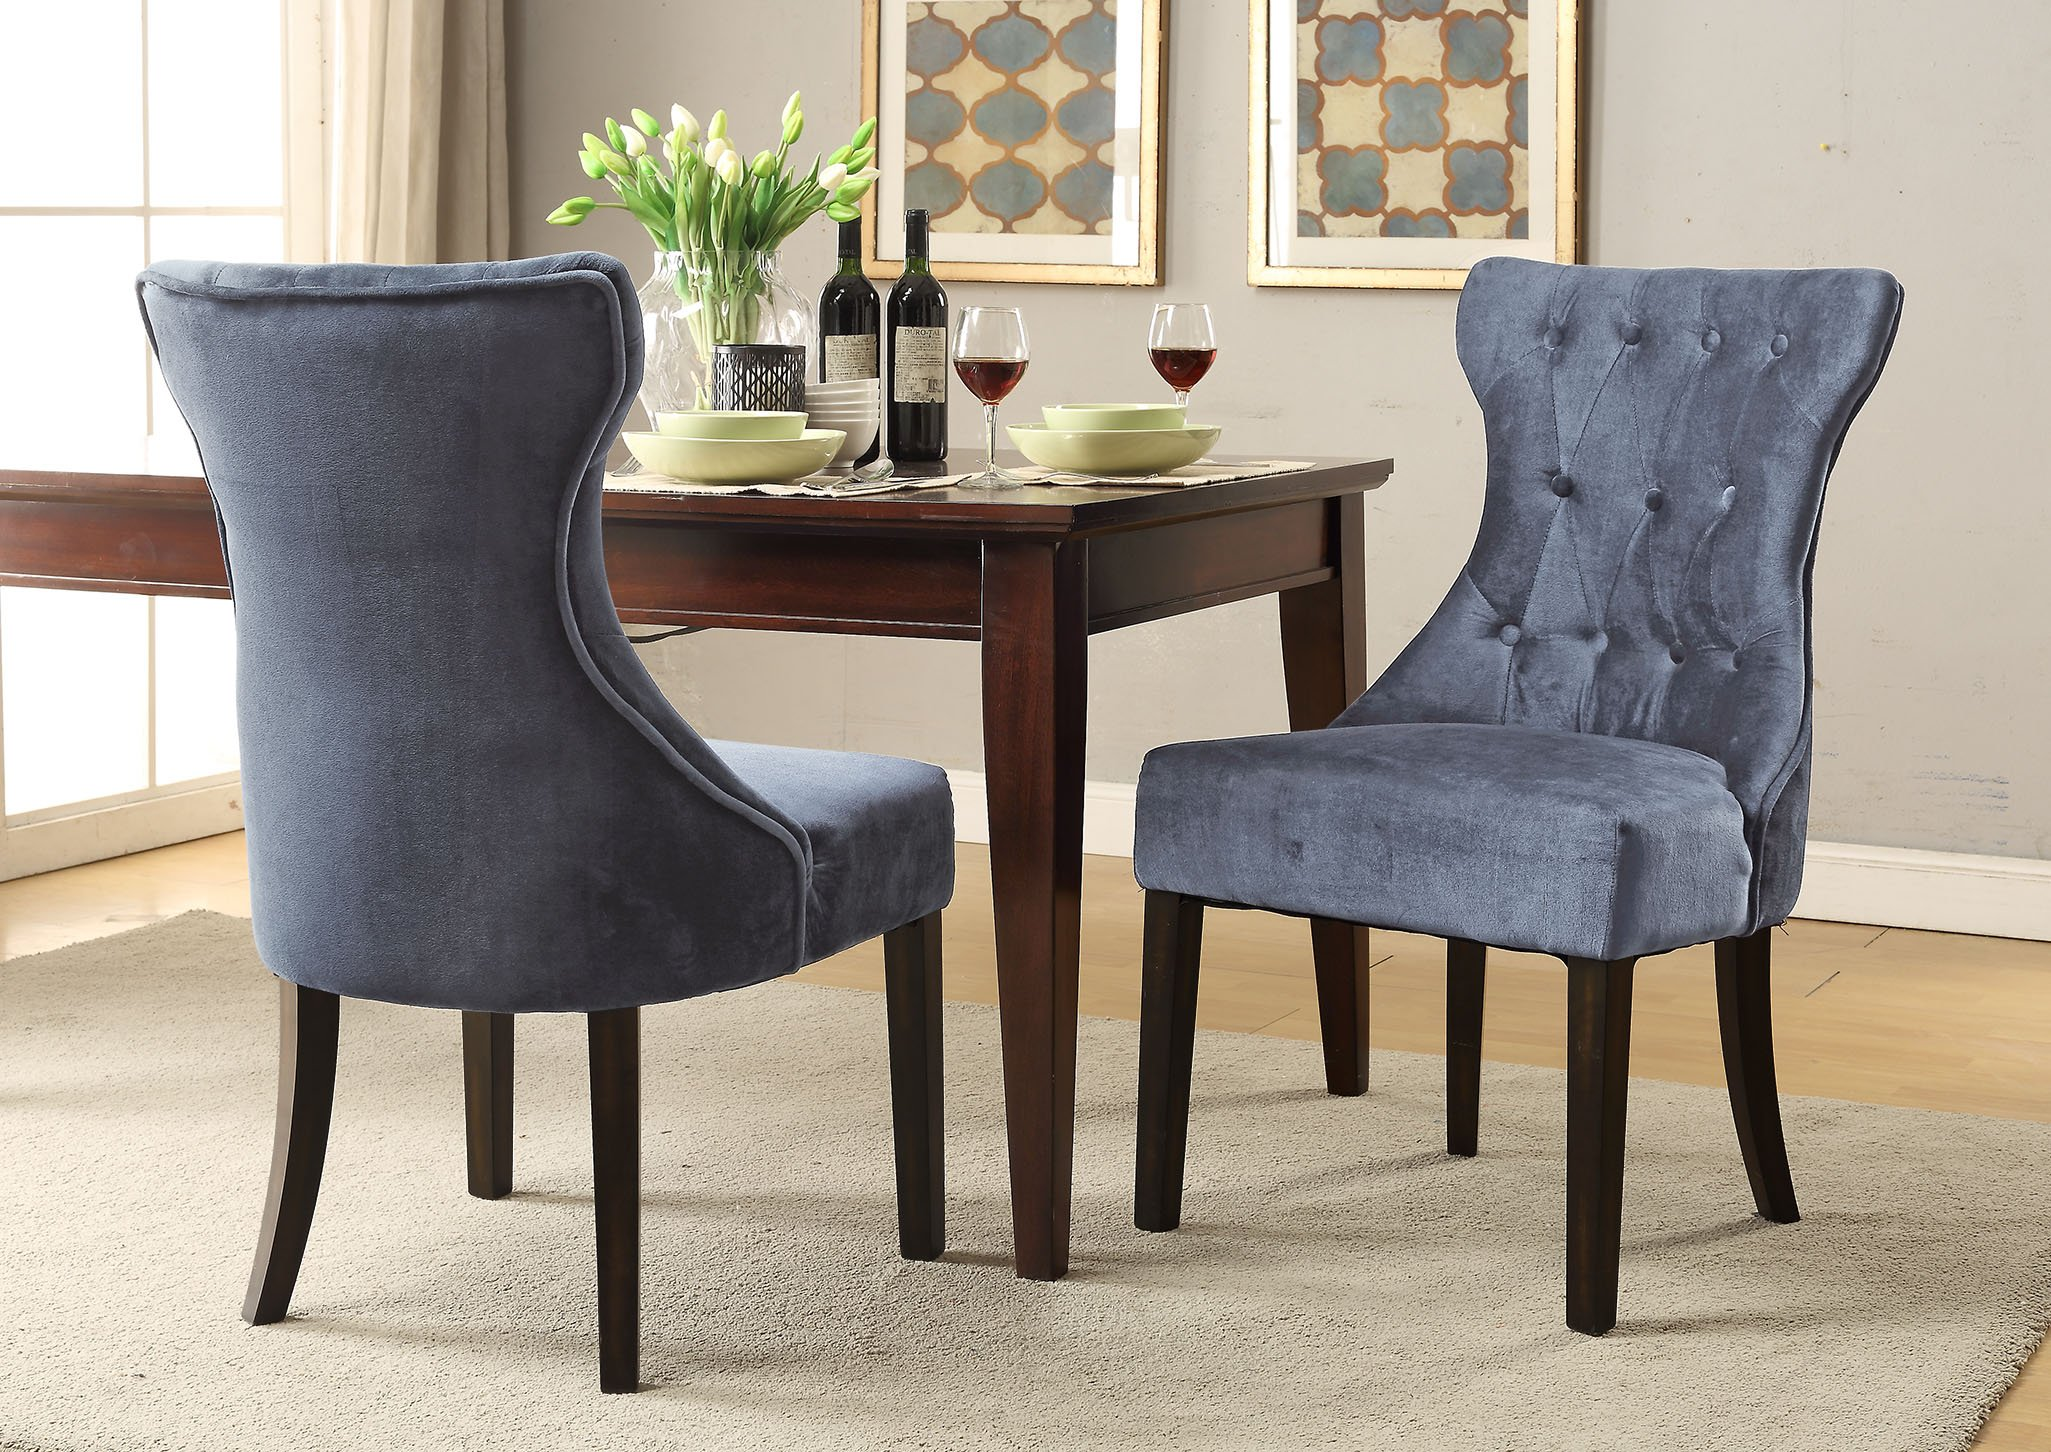 Iconic Home Dickens Dining Side Chair Button Tufted Velvet Espresso Wood Legs Modern Contemporary, Grey, Set of 2